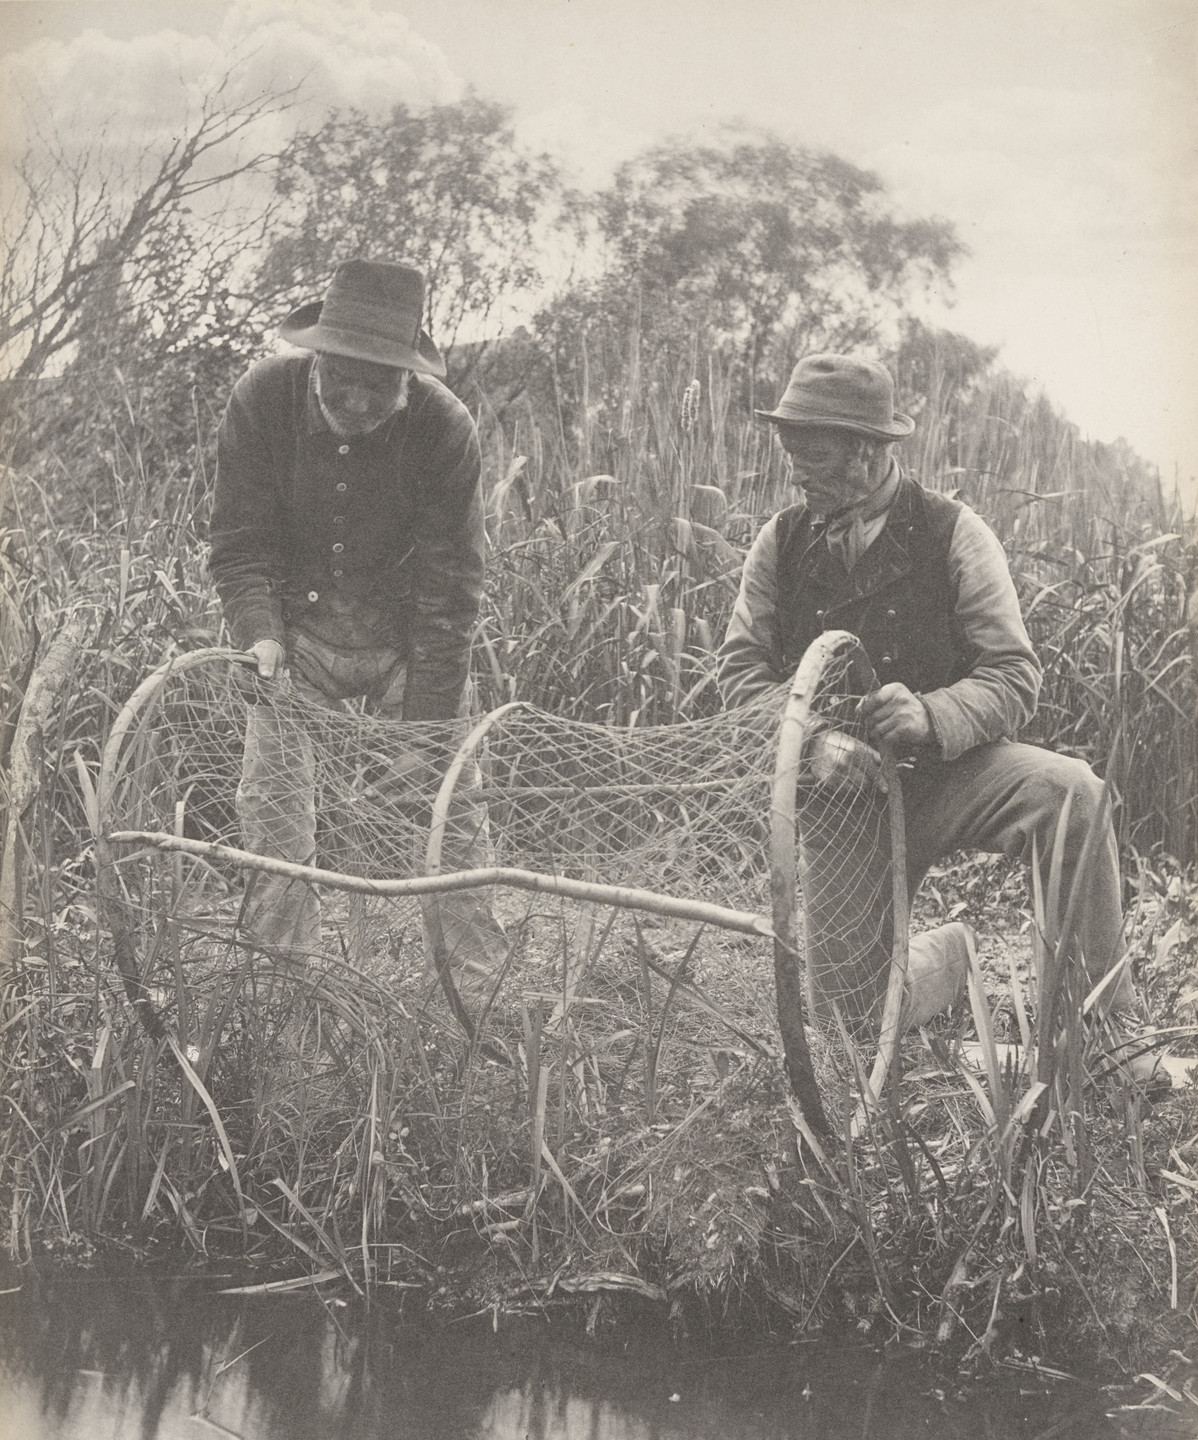 Peter Henry Emerson, T. F. Goodall. Setting up the Bow-Net from Life and Landscape on the Norfolk Broads (London, 1886). c. 1885